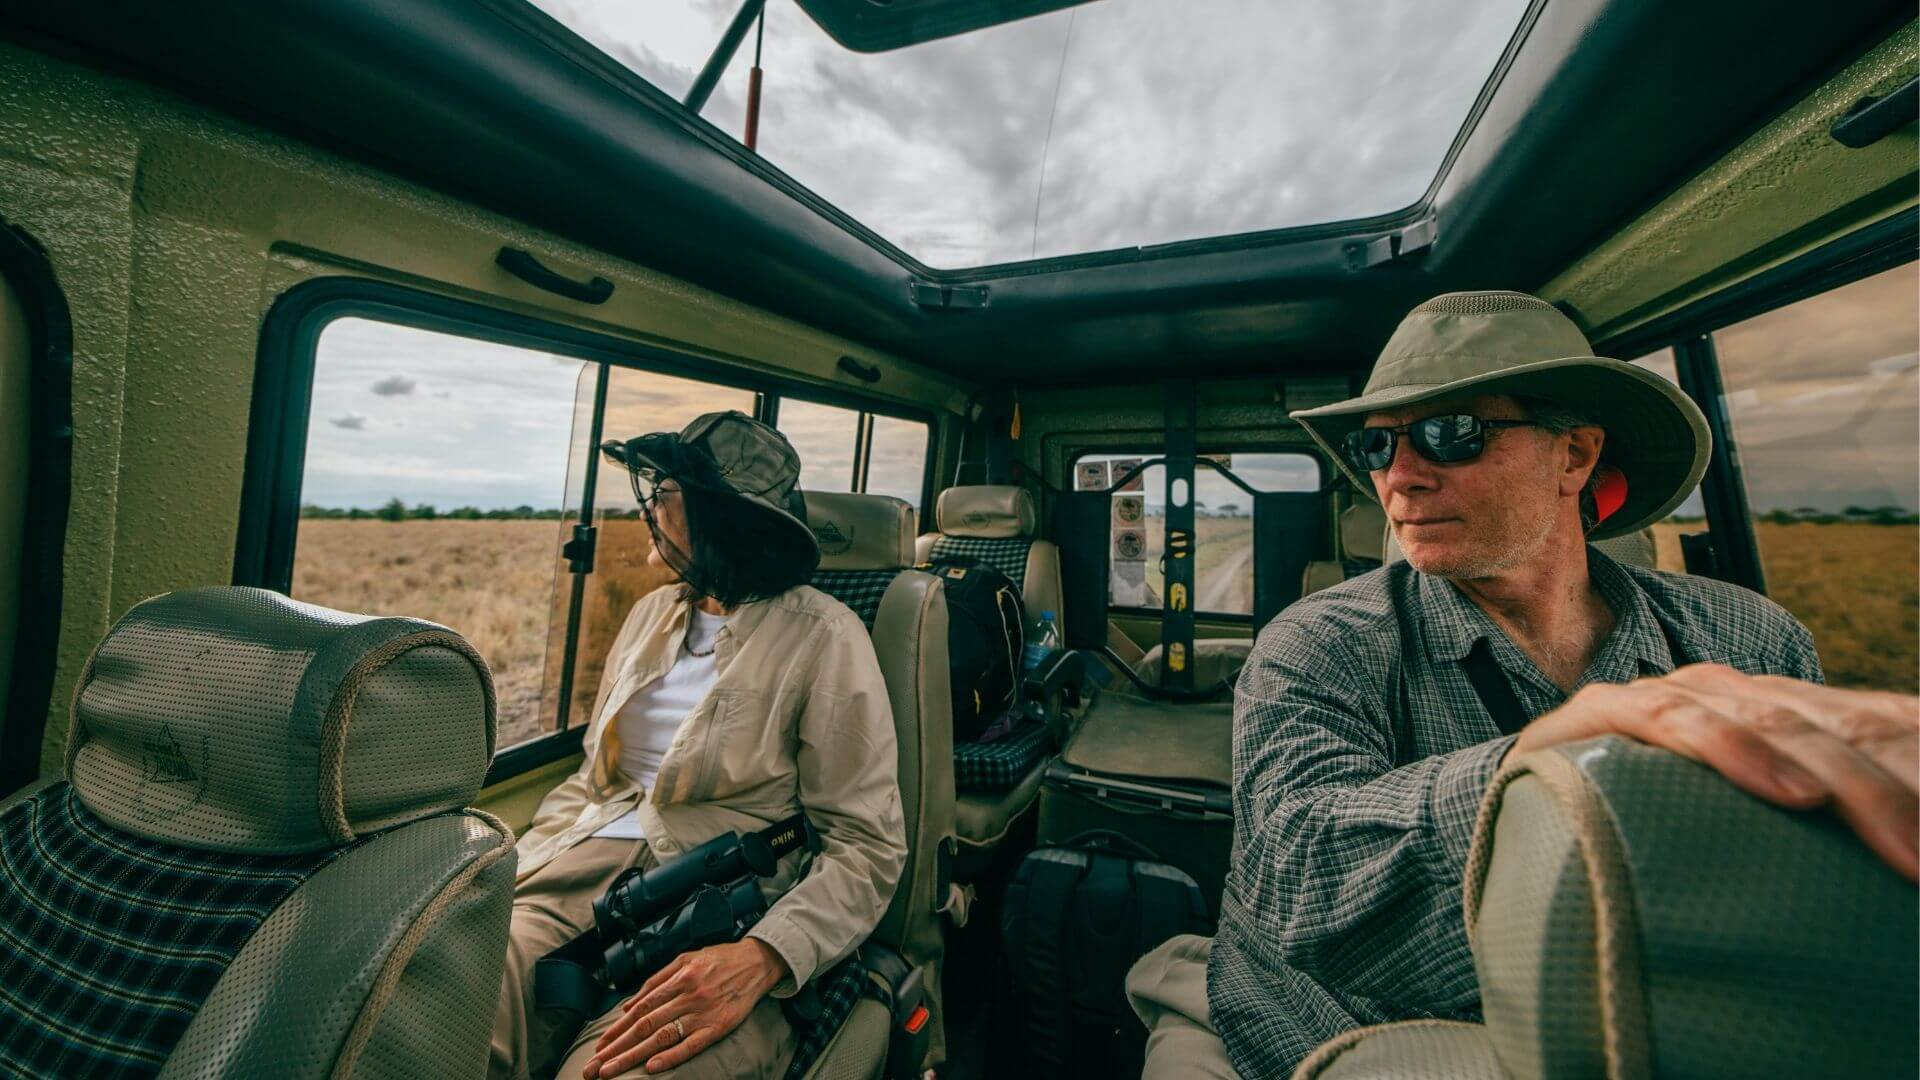 Pack Light: What to Bring on Your Next Safari Adventure